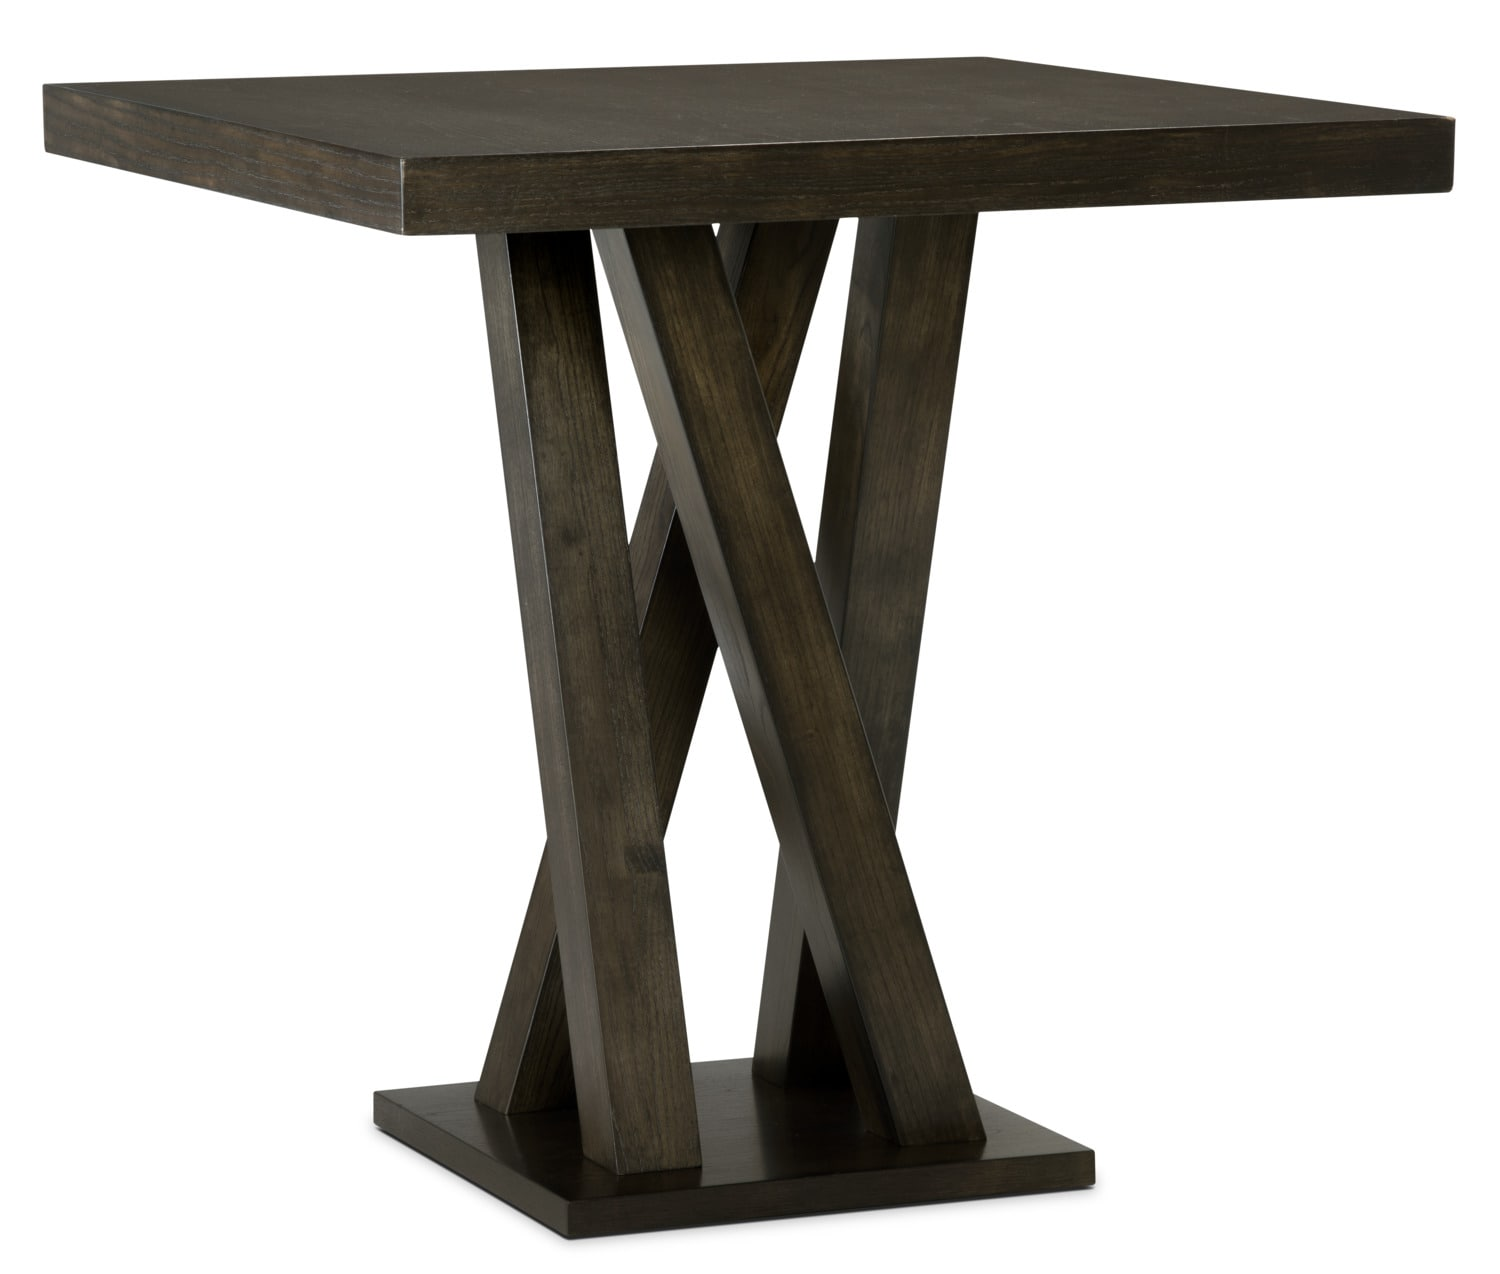 Dining Room Furniture - Soho Counter-Height Dining Table